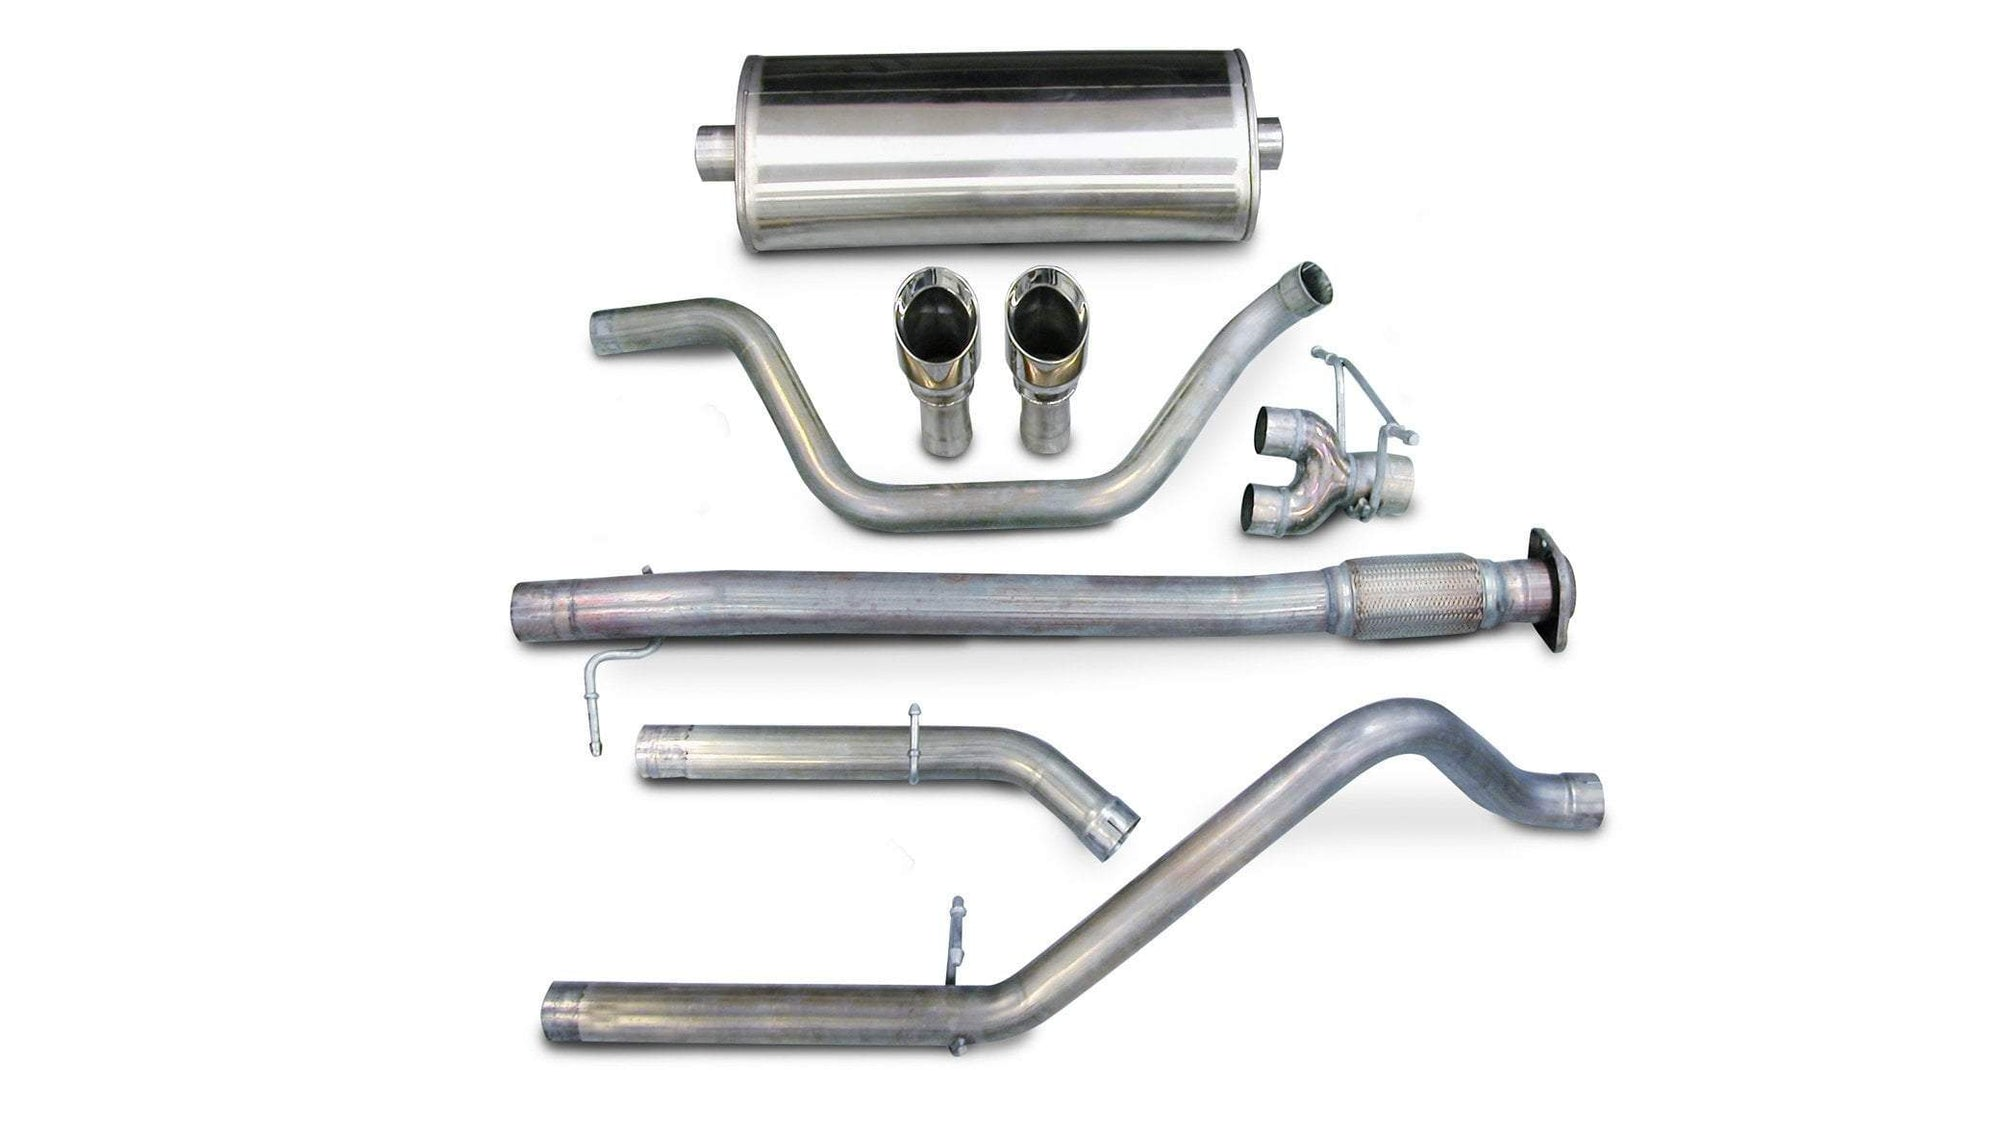 "CORSA PERFORMANCE Cat-Back Exhaust Polished / Sport / Dual Rear - Single 4.0in 2007-2008 Chevrolet Silverado, GMC Sierra 4.8L, 5.3L, 6.0L V8, 3.0"" Dual Rear Exit Catback Exhaust System with Single 4"" Tips (14199) Sport Sound Level"